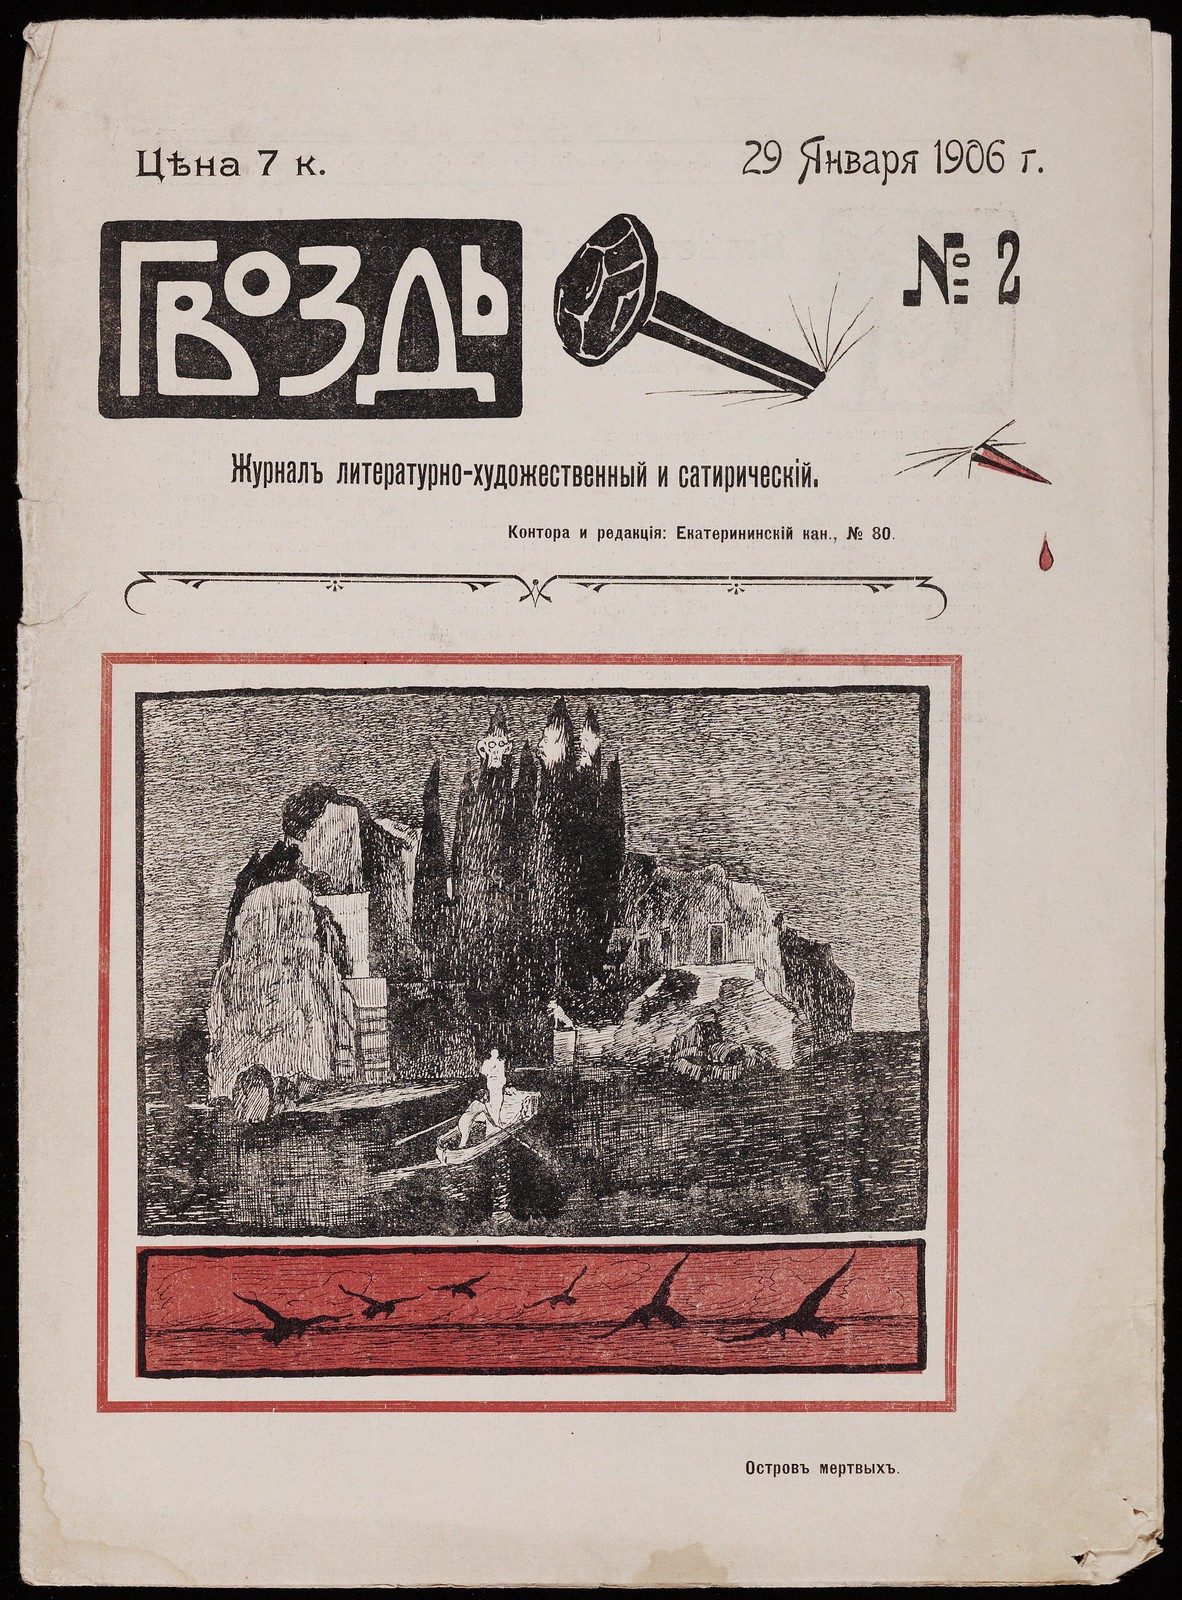 Gvozd, Issue 2, 1906